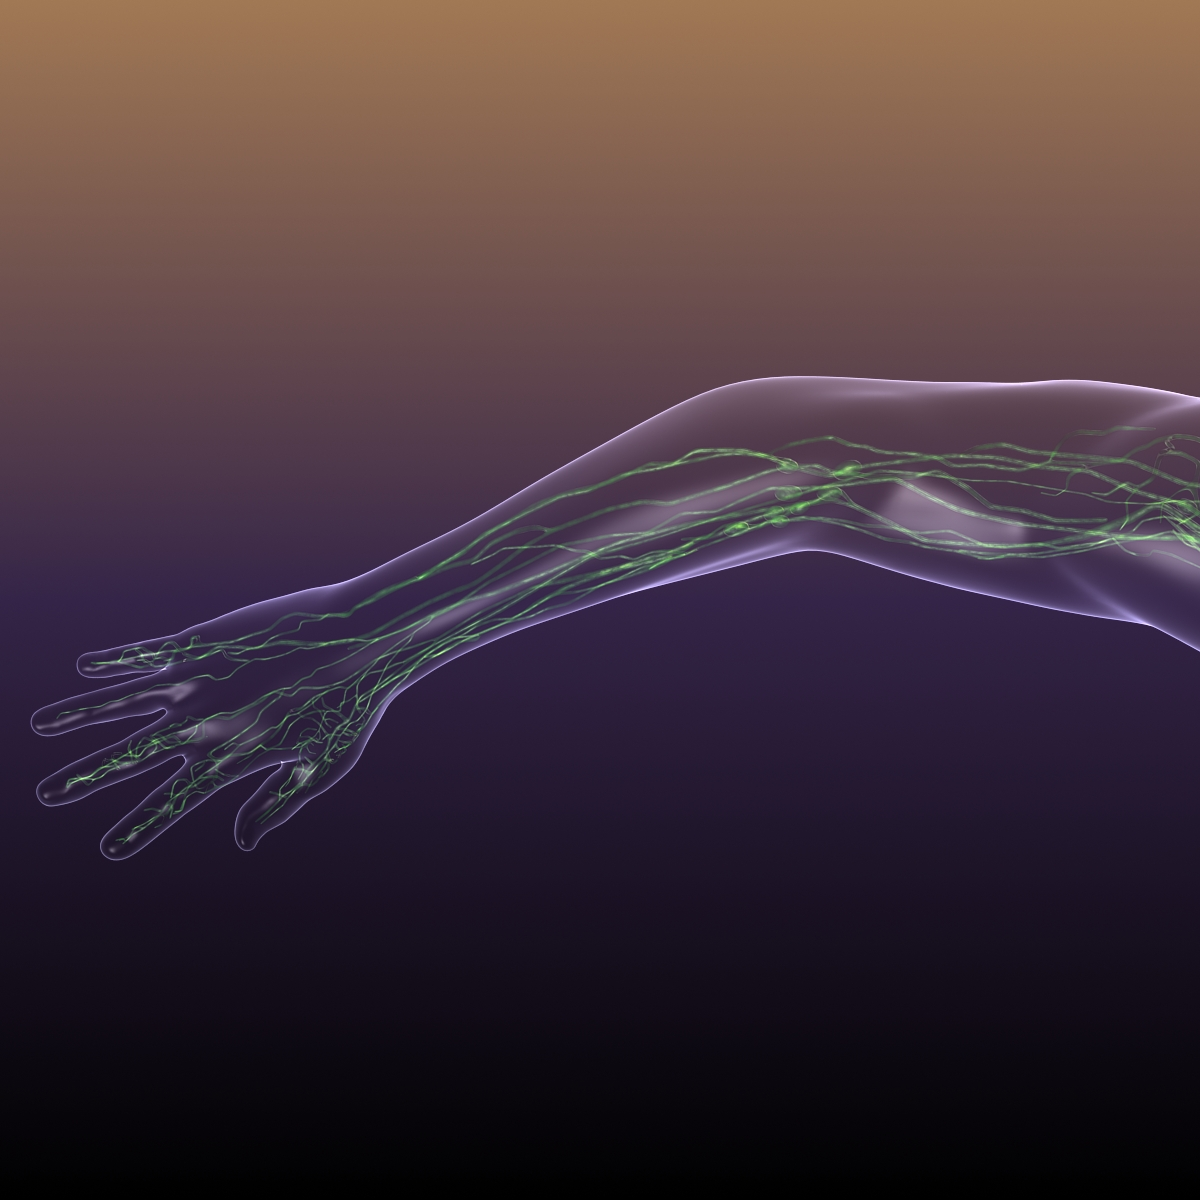 lymphatic system in human body 3d model 3ds max fbx c4d dae ma mb 3dm  obj 170720